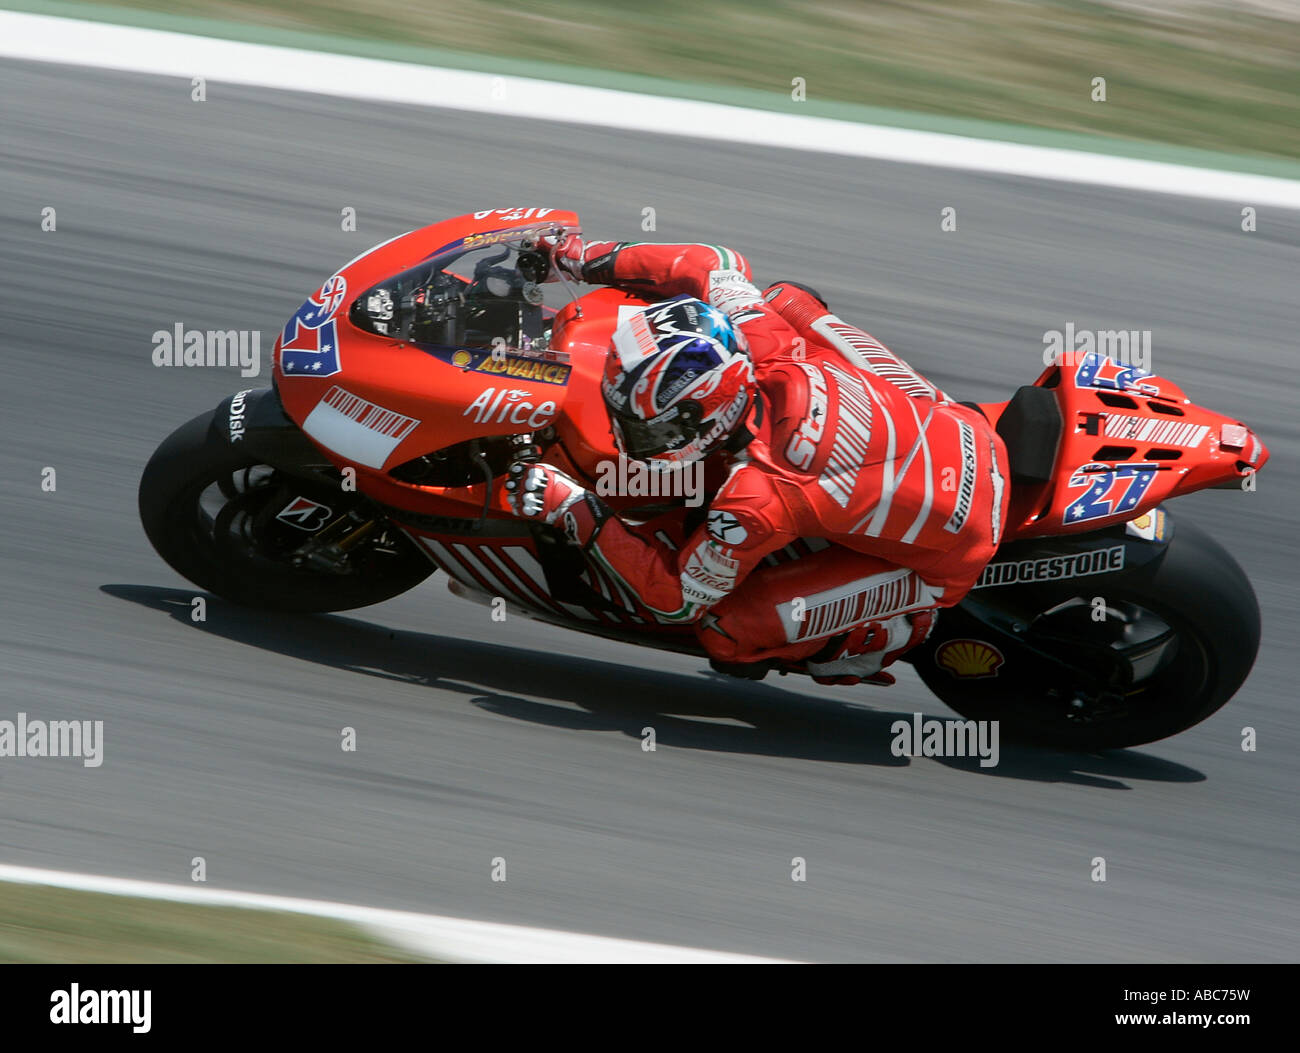 Casey Stoner Ducati Stock Photos & Casey Stoner Ducati Stock Images - Alamy